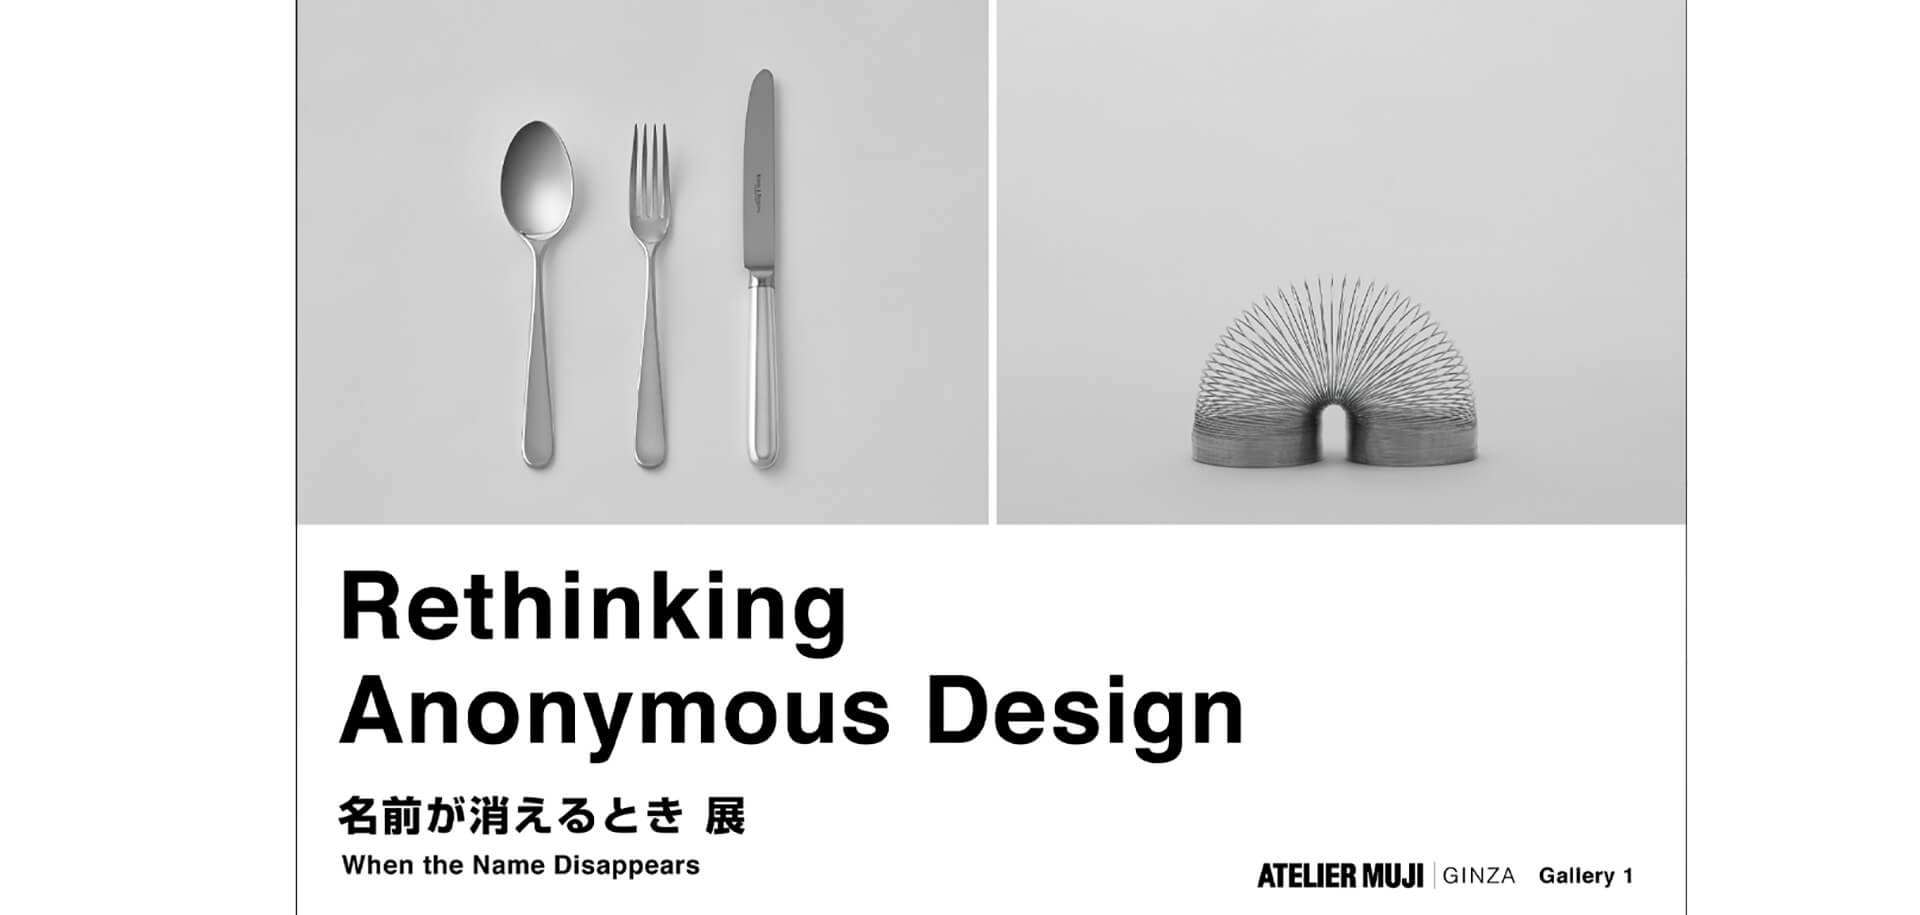 Rethinking Anonymous Design - 名前が消えるとき